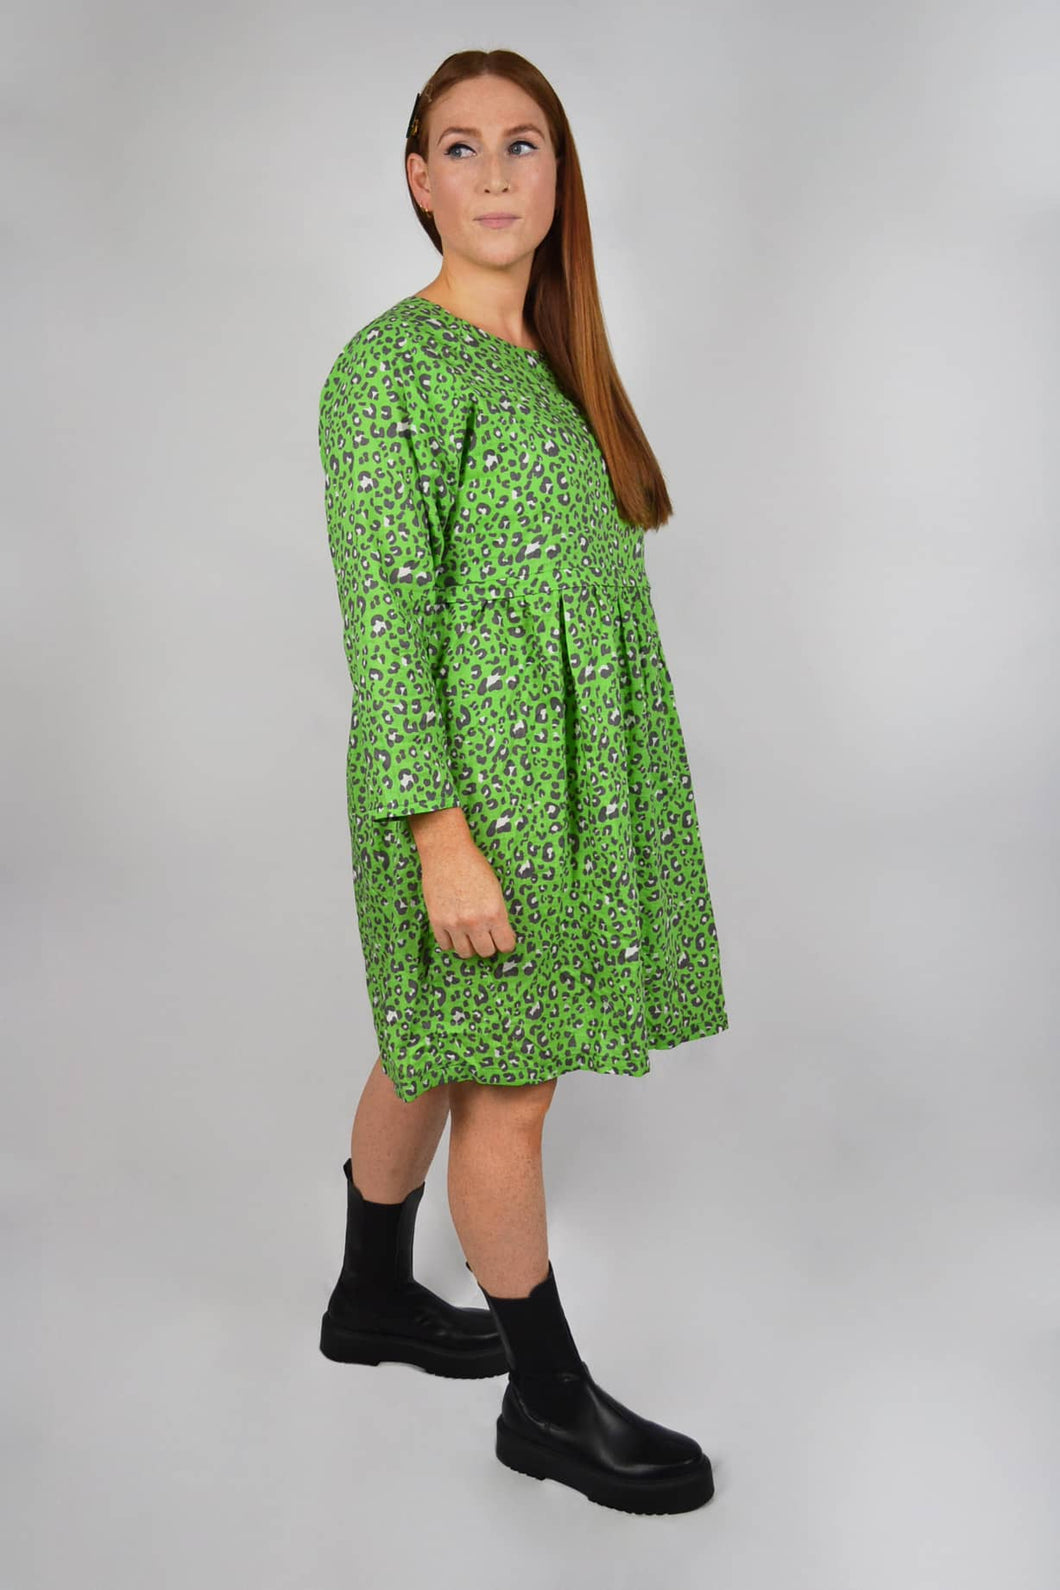 Green leopard print smock dress for breastfeeding